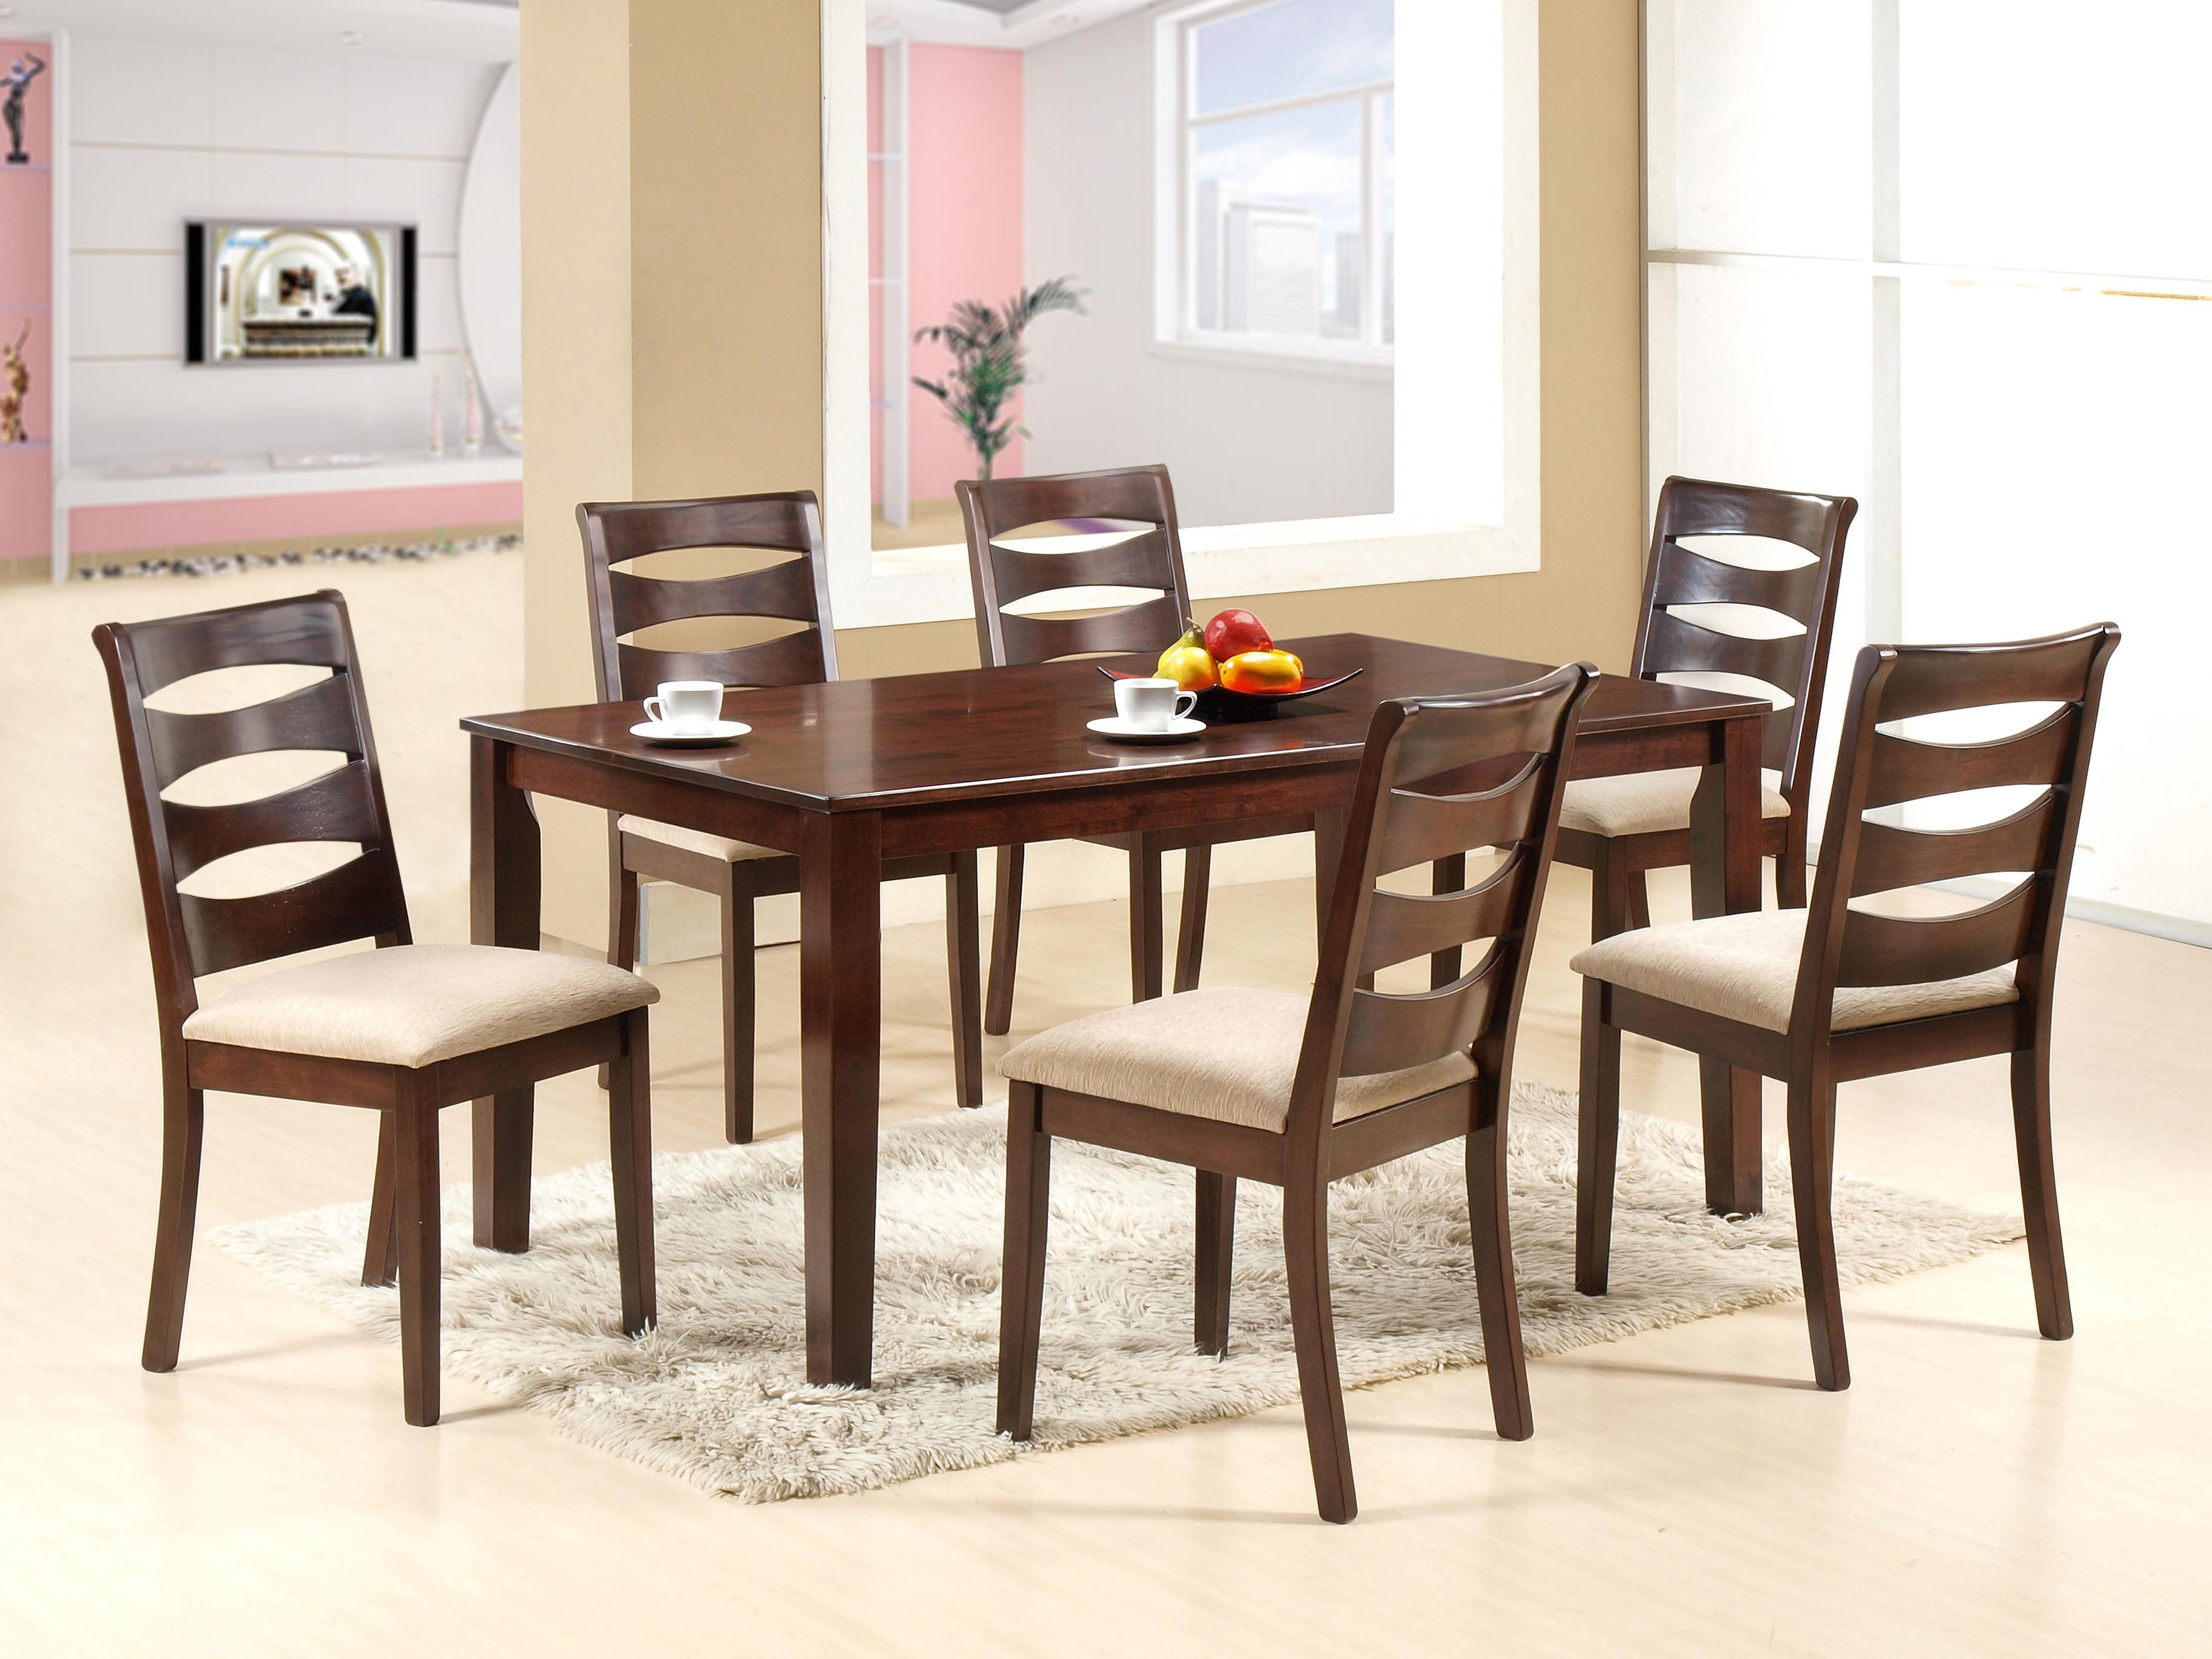 NEW SANDY DINING SET